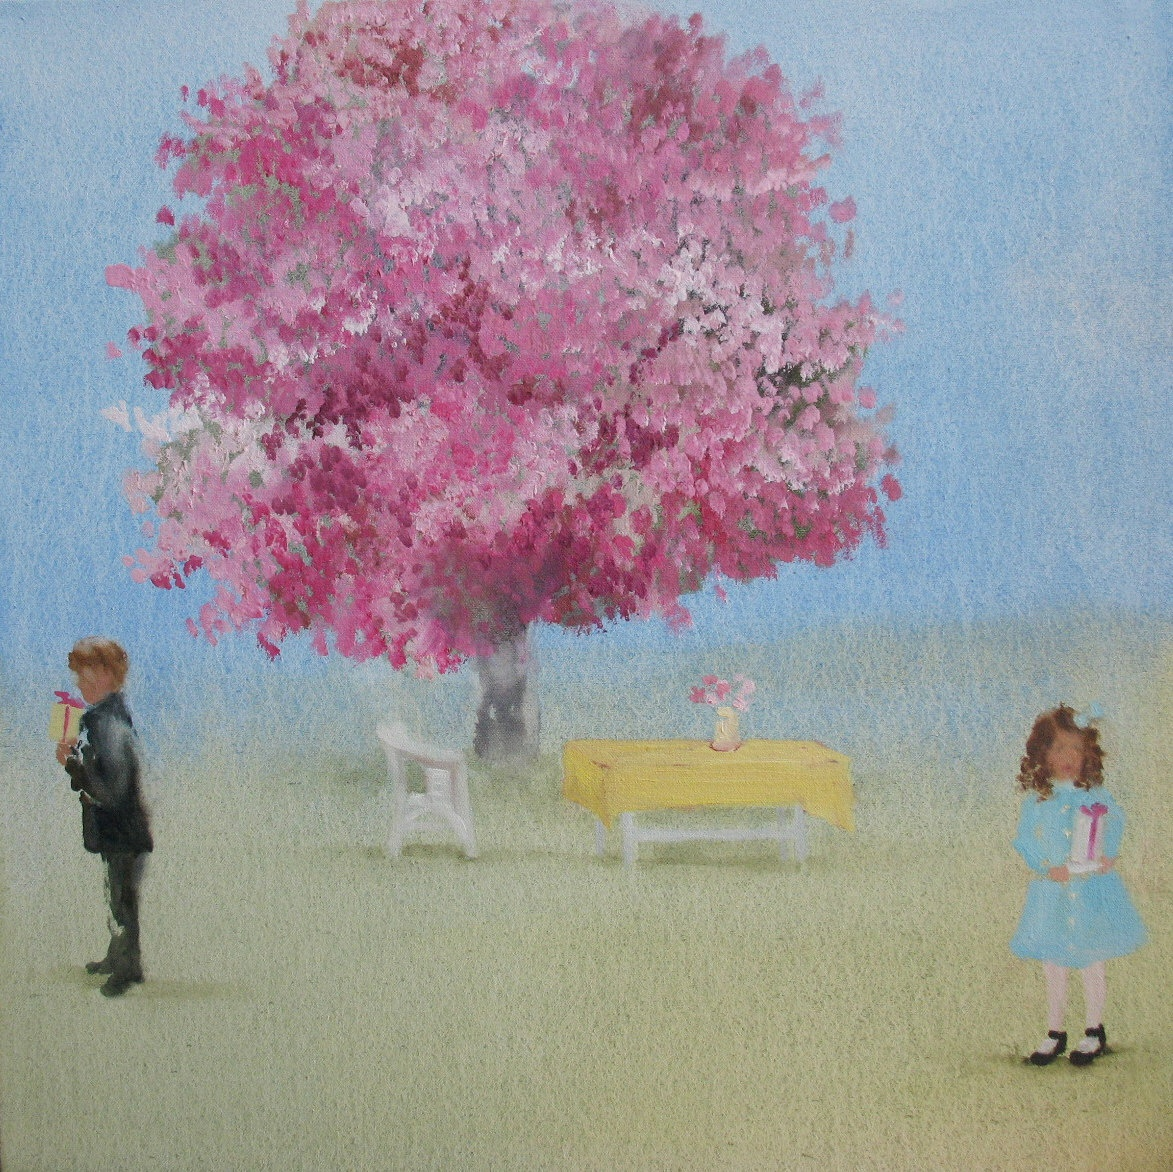 Acoustic Cameo (blossom party) 16 x 16 in. oil on canvas 2009